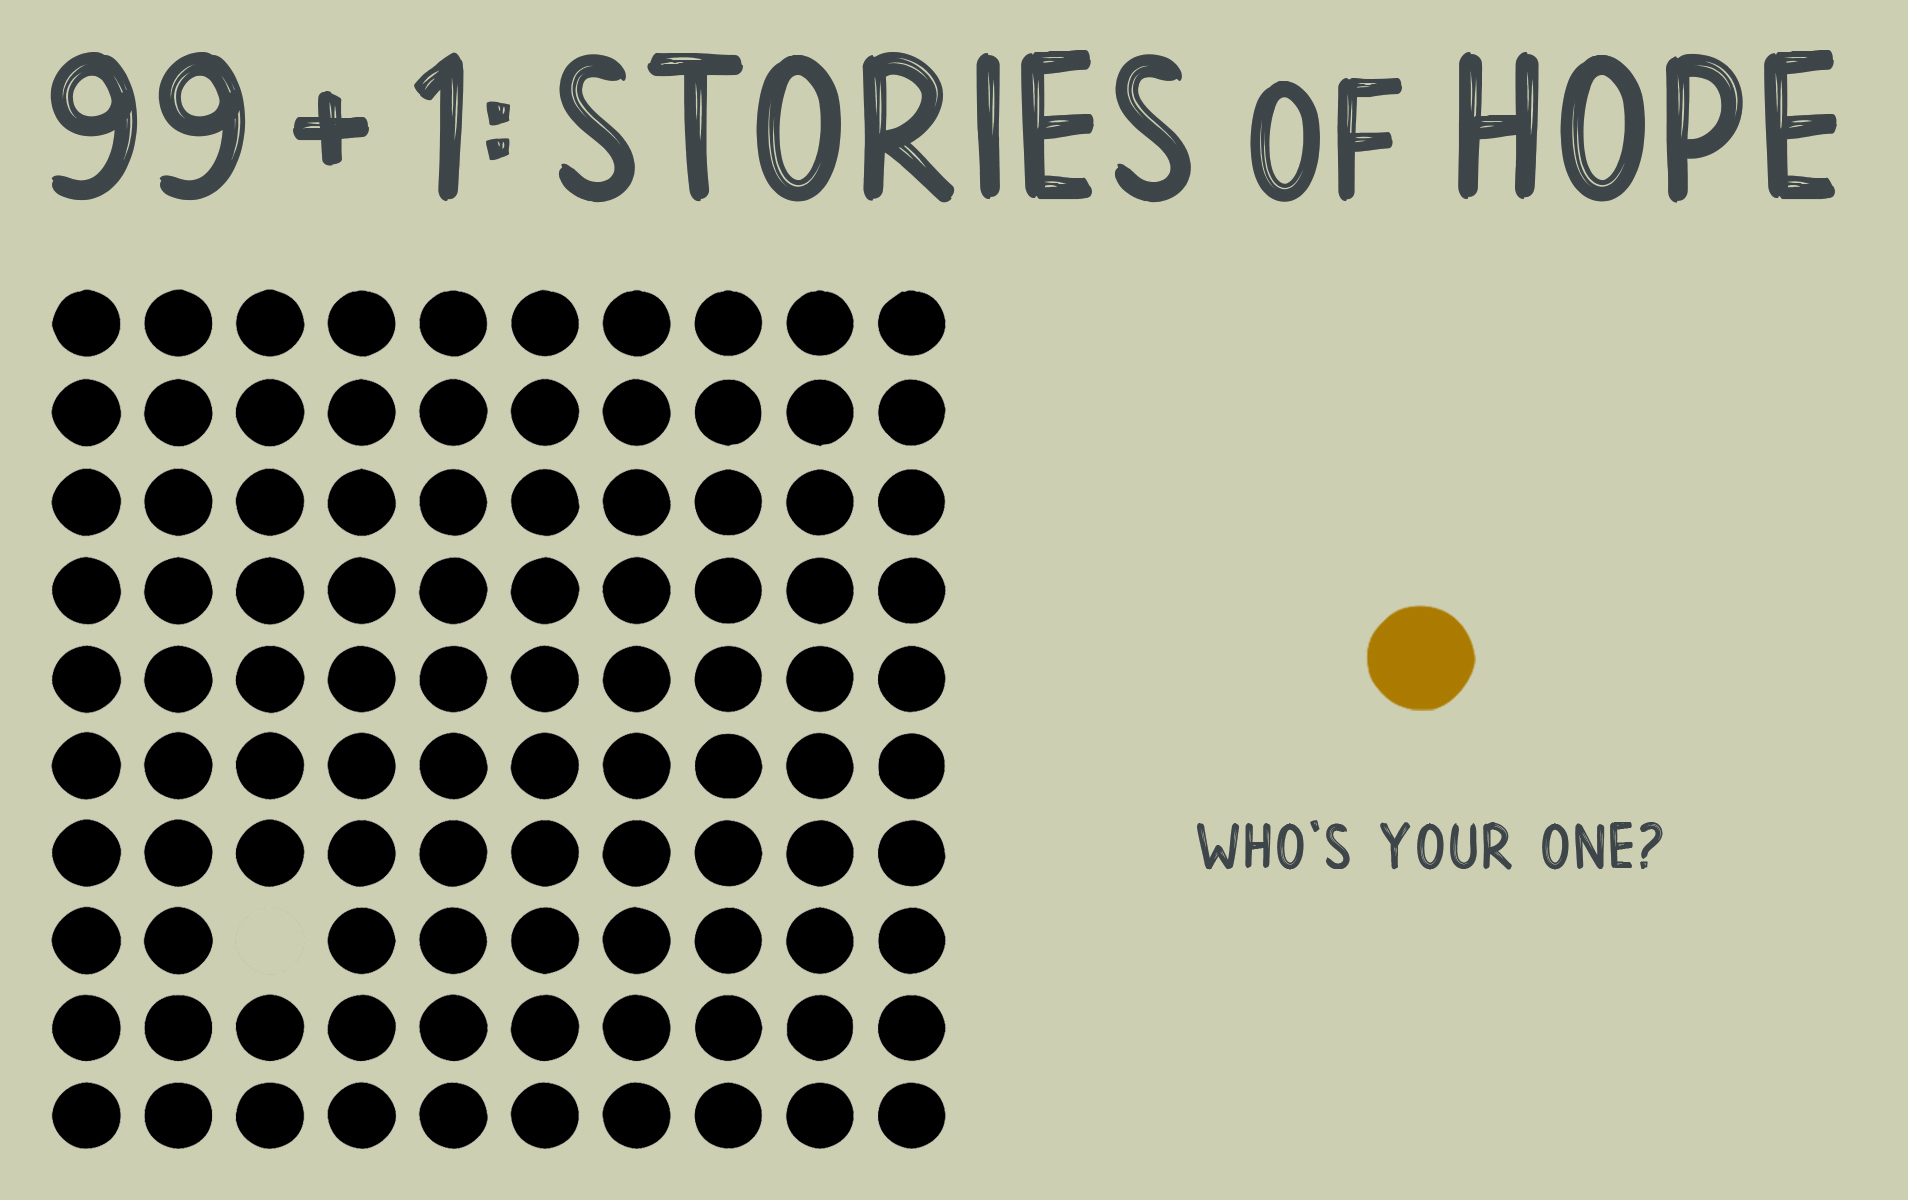 99 + 1: Stories of Hope